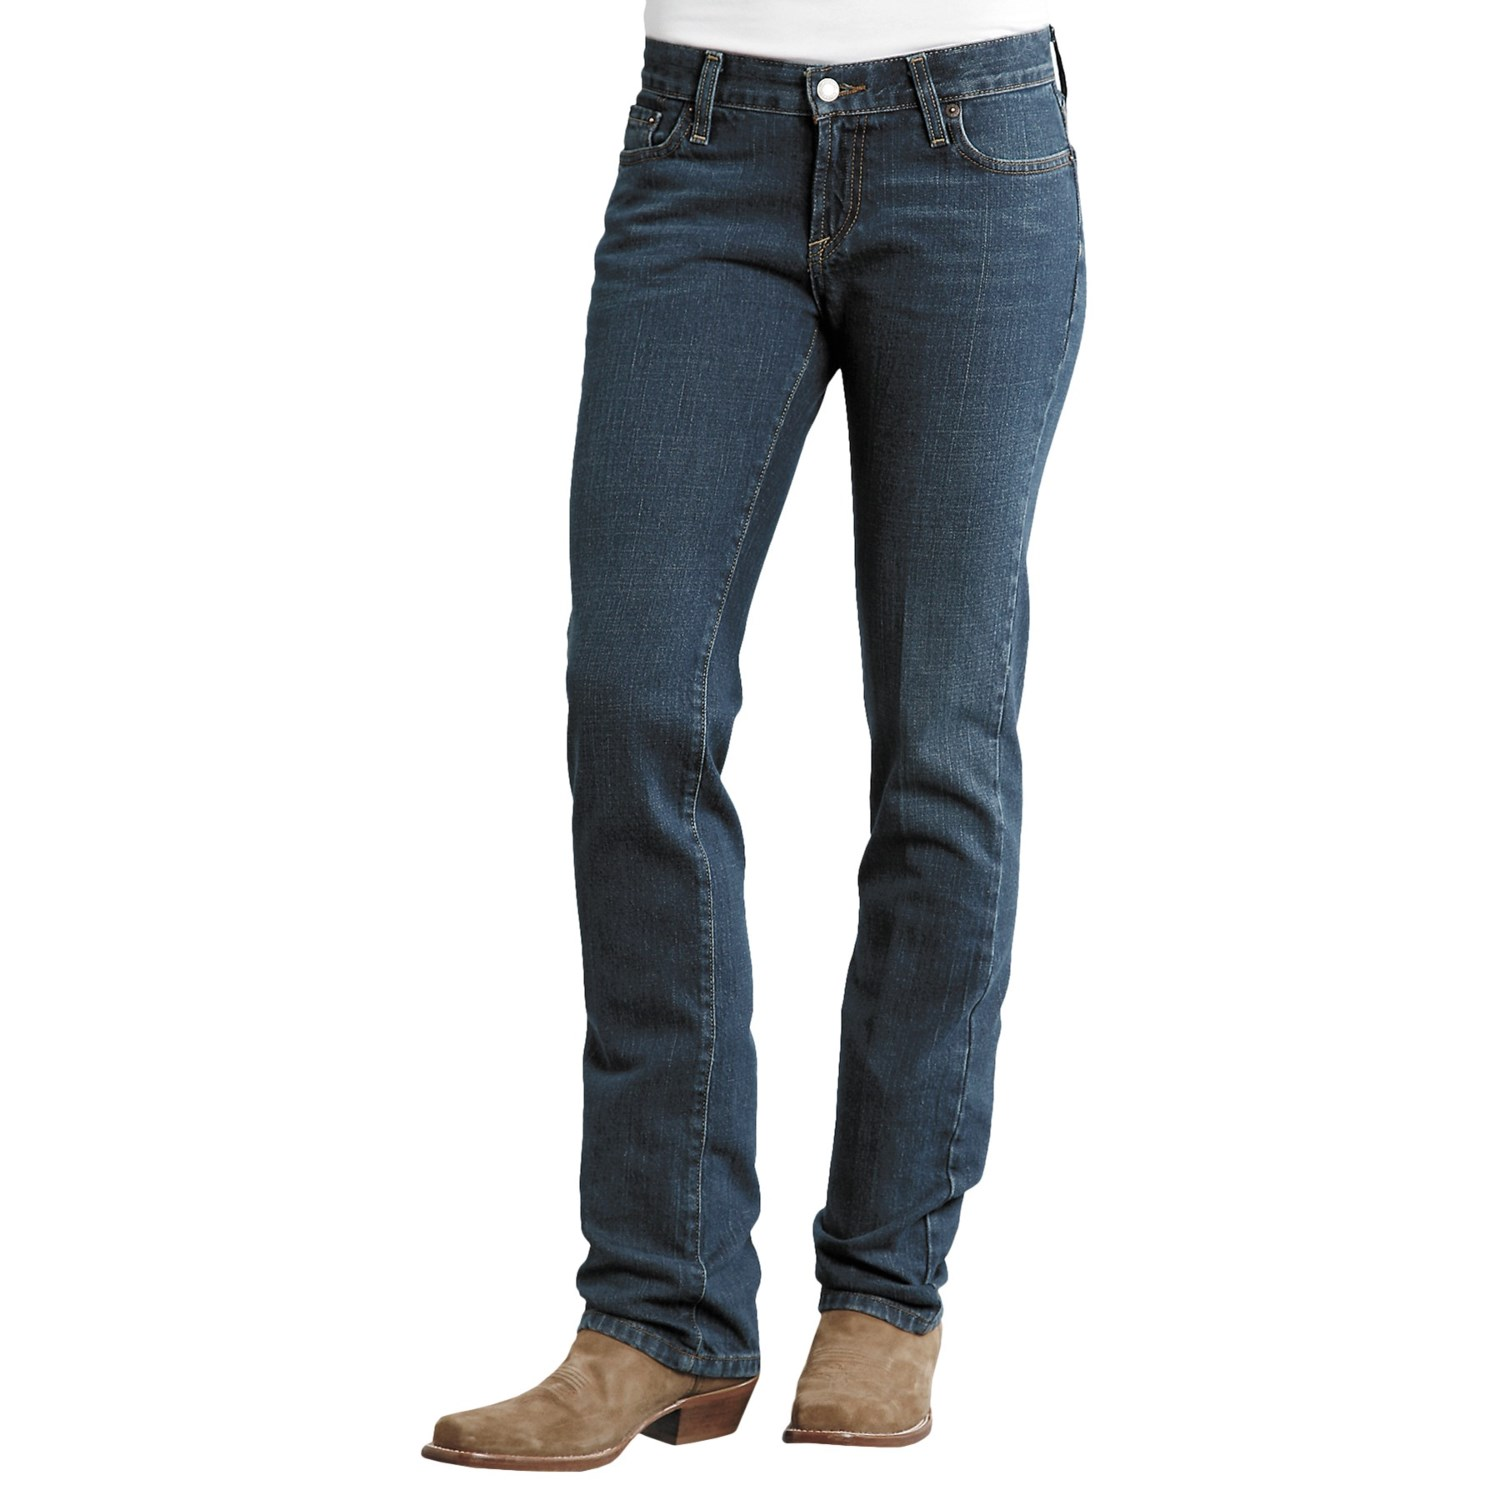 Shop Women's Jeans at American Eagle available in extended sizes. Choose from Jegging, High Waisted, Skinny and more in light and dark washes from America's favorite denim brand. #AEJeans. Low Rise Mid Rise Hi-Rise.